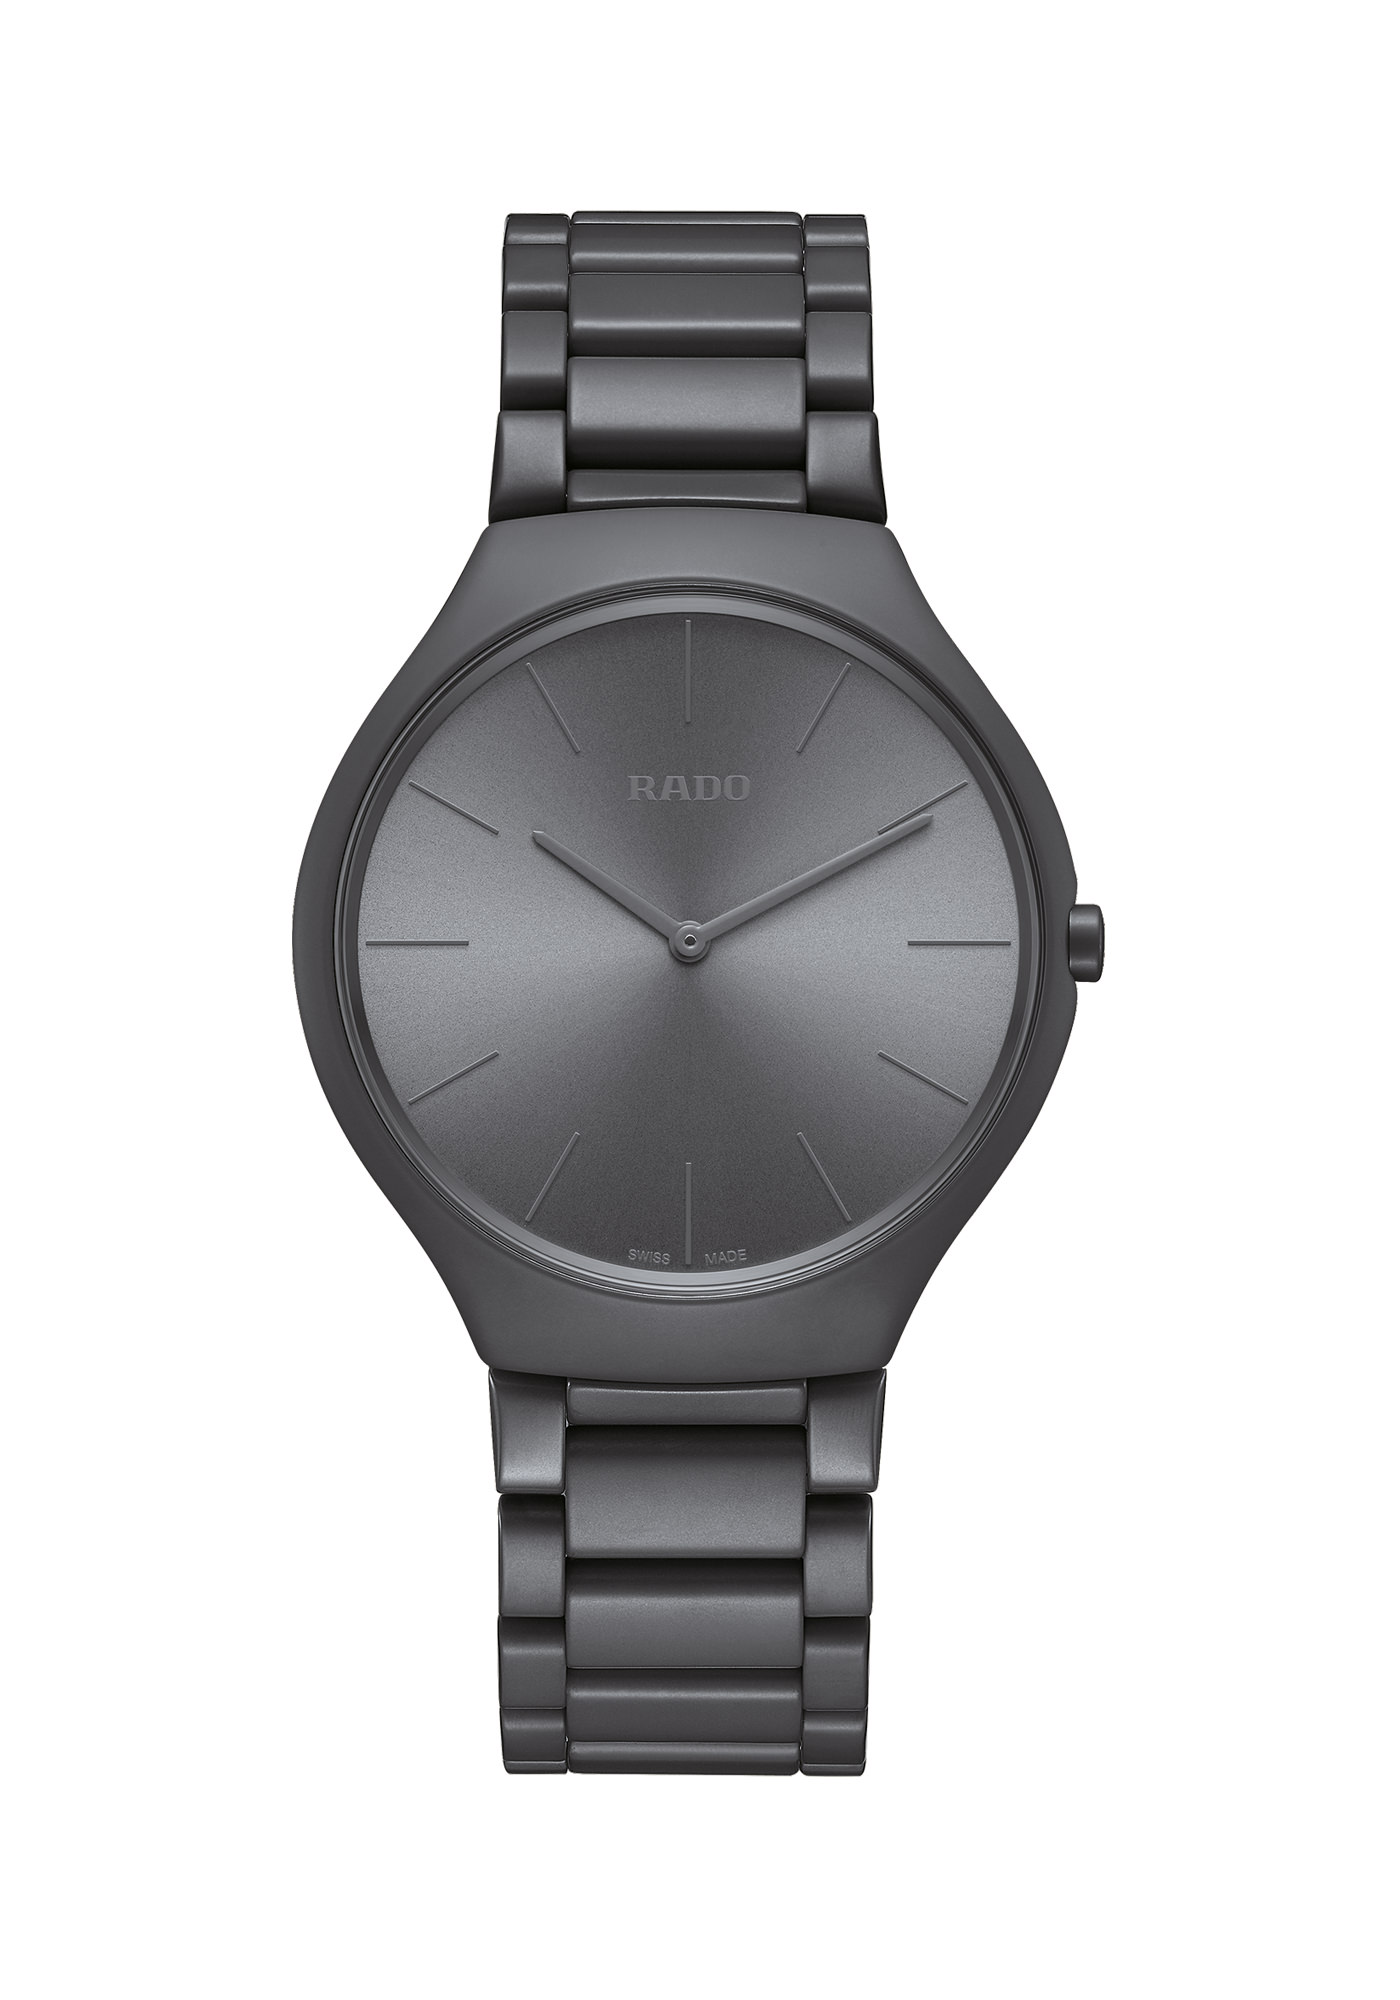 Rado Montres True Thinline Les Couleurs Le Corbusier Iron Grey 32010